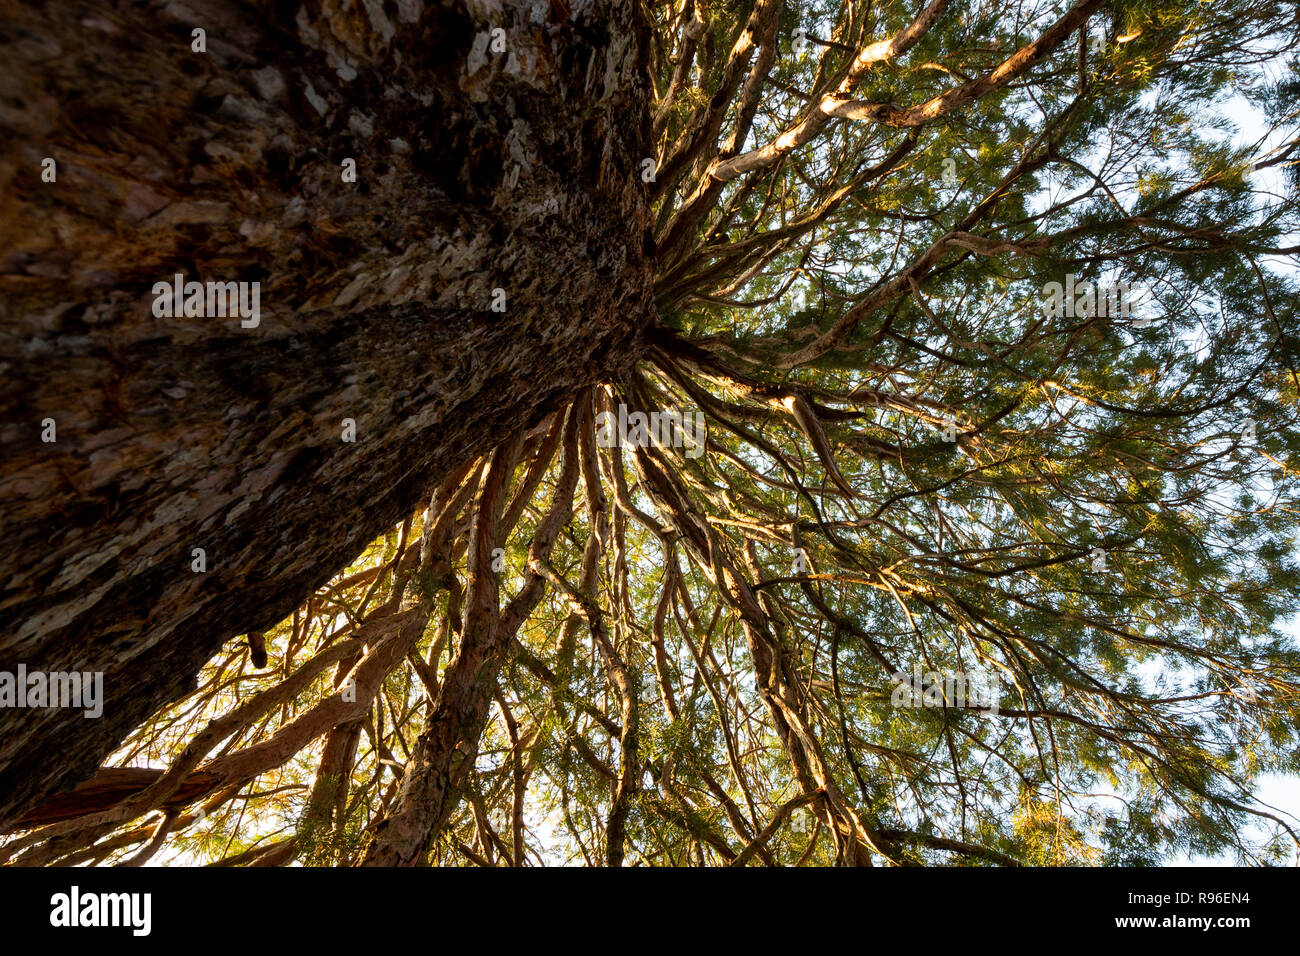 Giant redwood Sequoiadendron giganteum branches photographed from below upwards. Composition of tree trunk and radial branches. Stock Photo